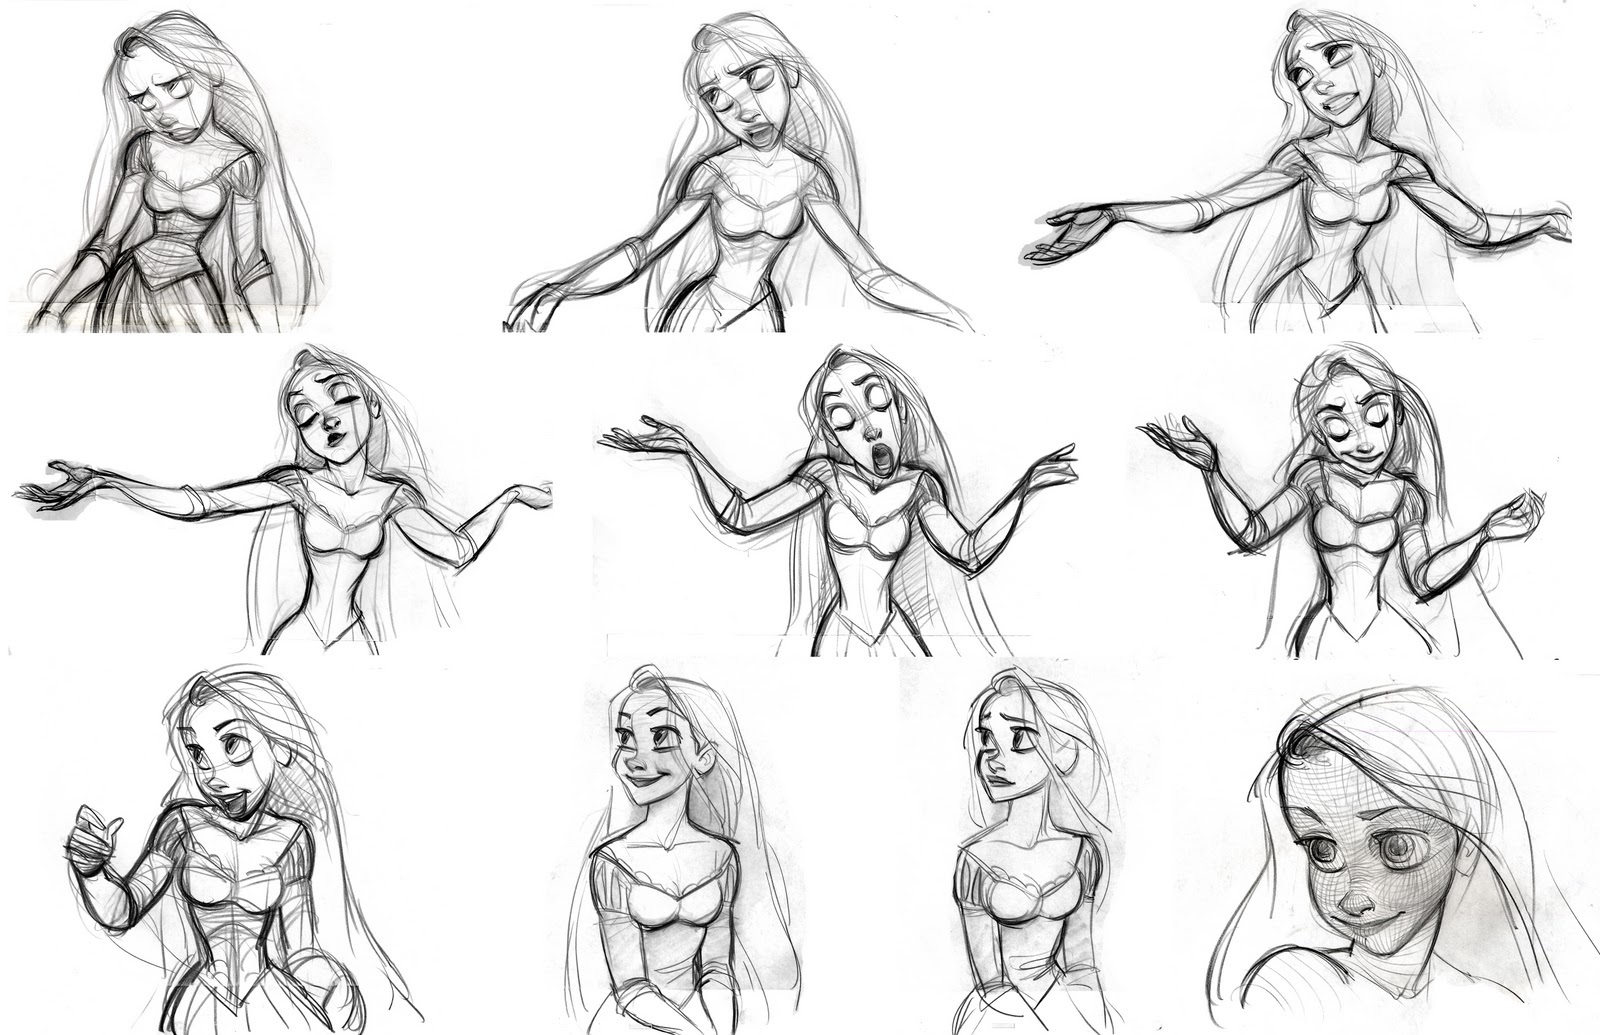 Disney Character Design Study : Disney sketches images tangled sketch hd wallpaper and